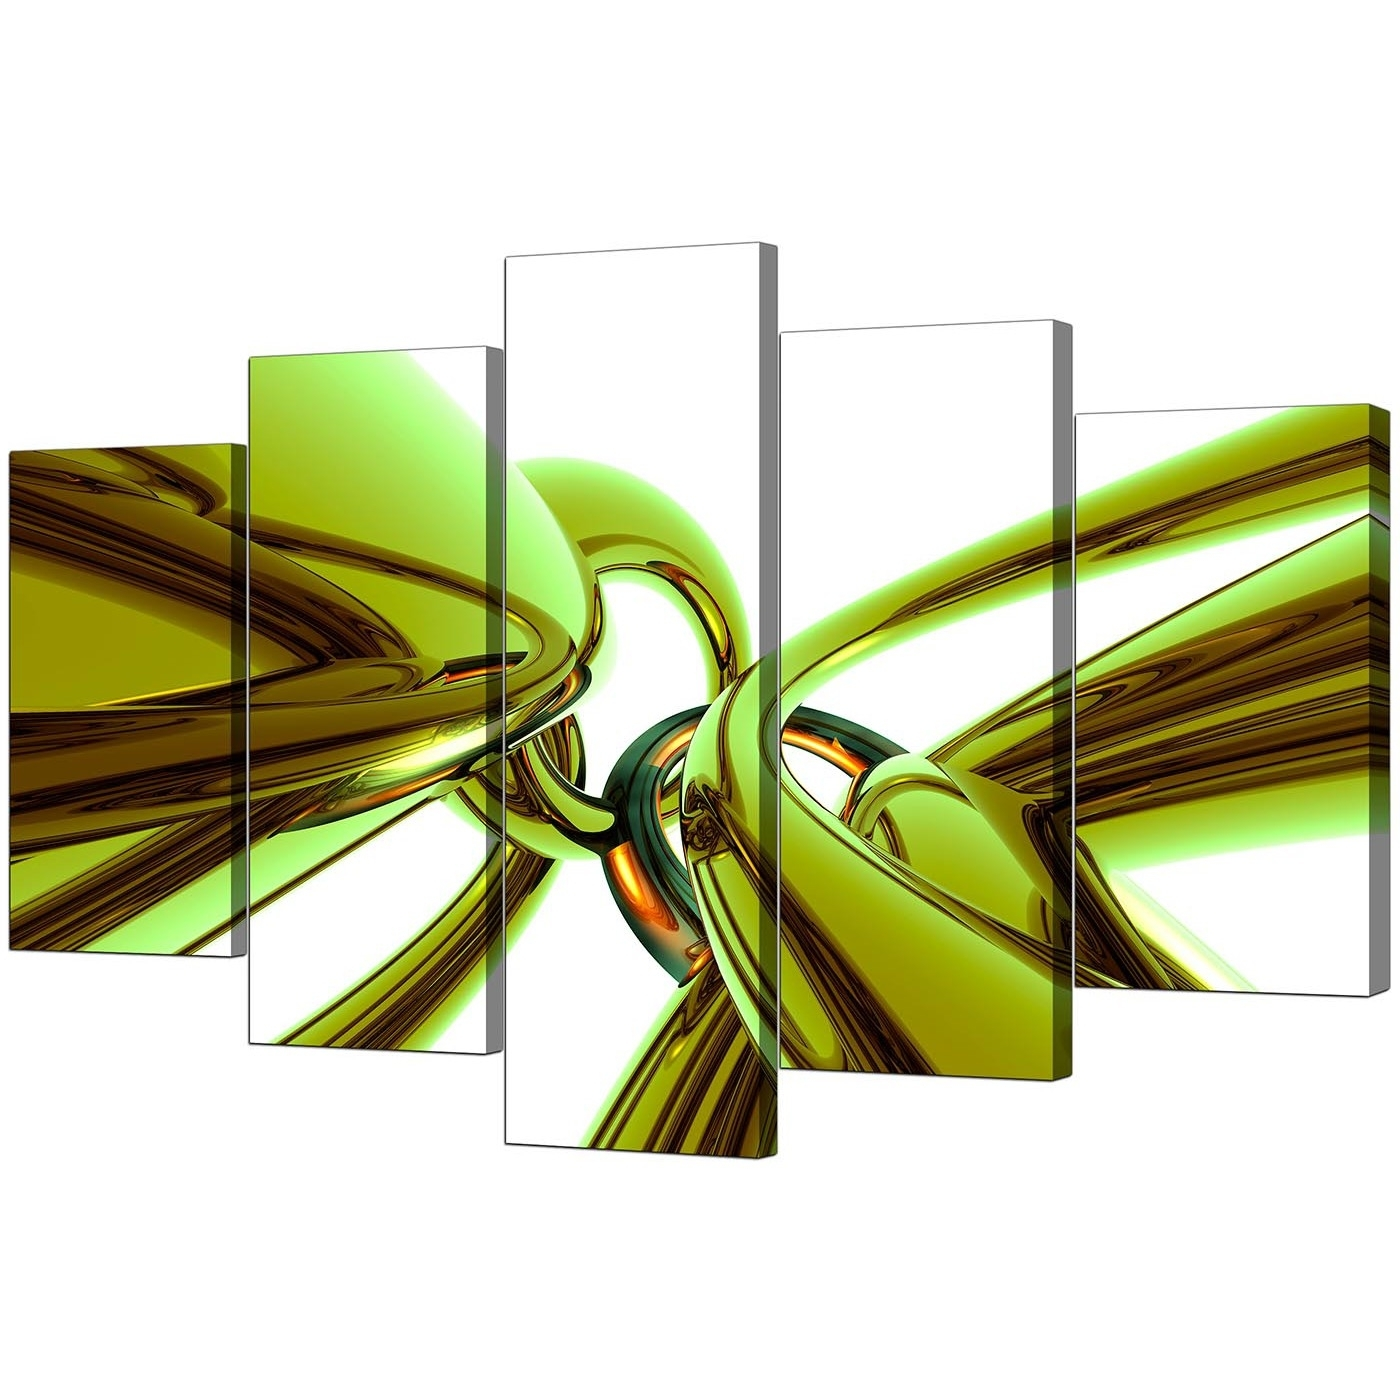 Green Canvas Wall Art Throughout Trendy Extra Large Green Abstract Canvas Prints Uk – 5 Piece (View 5 of 15)